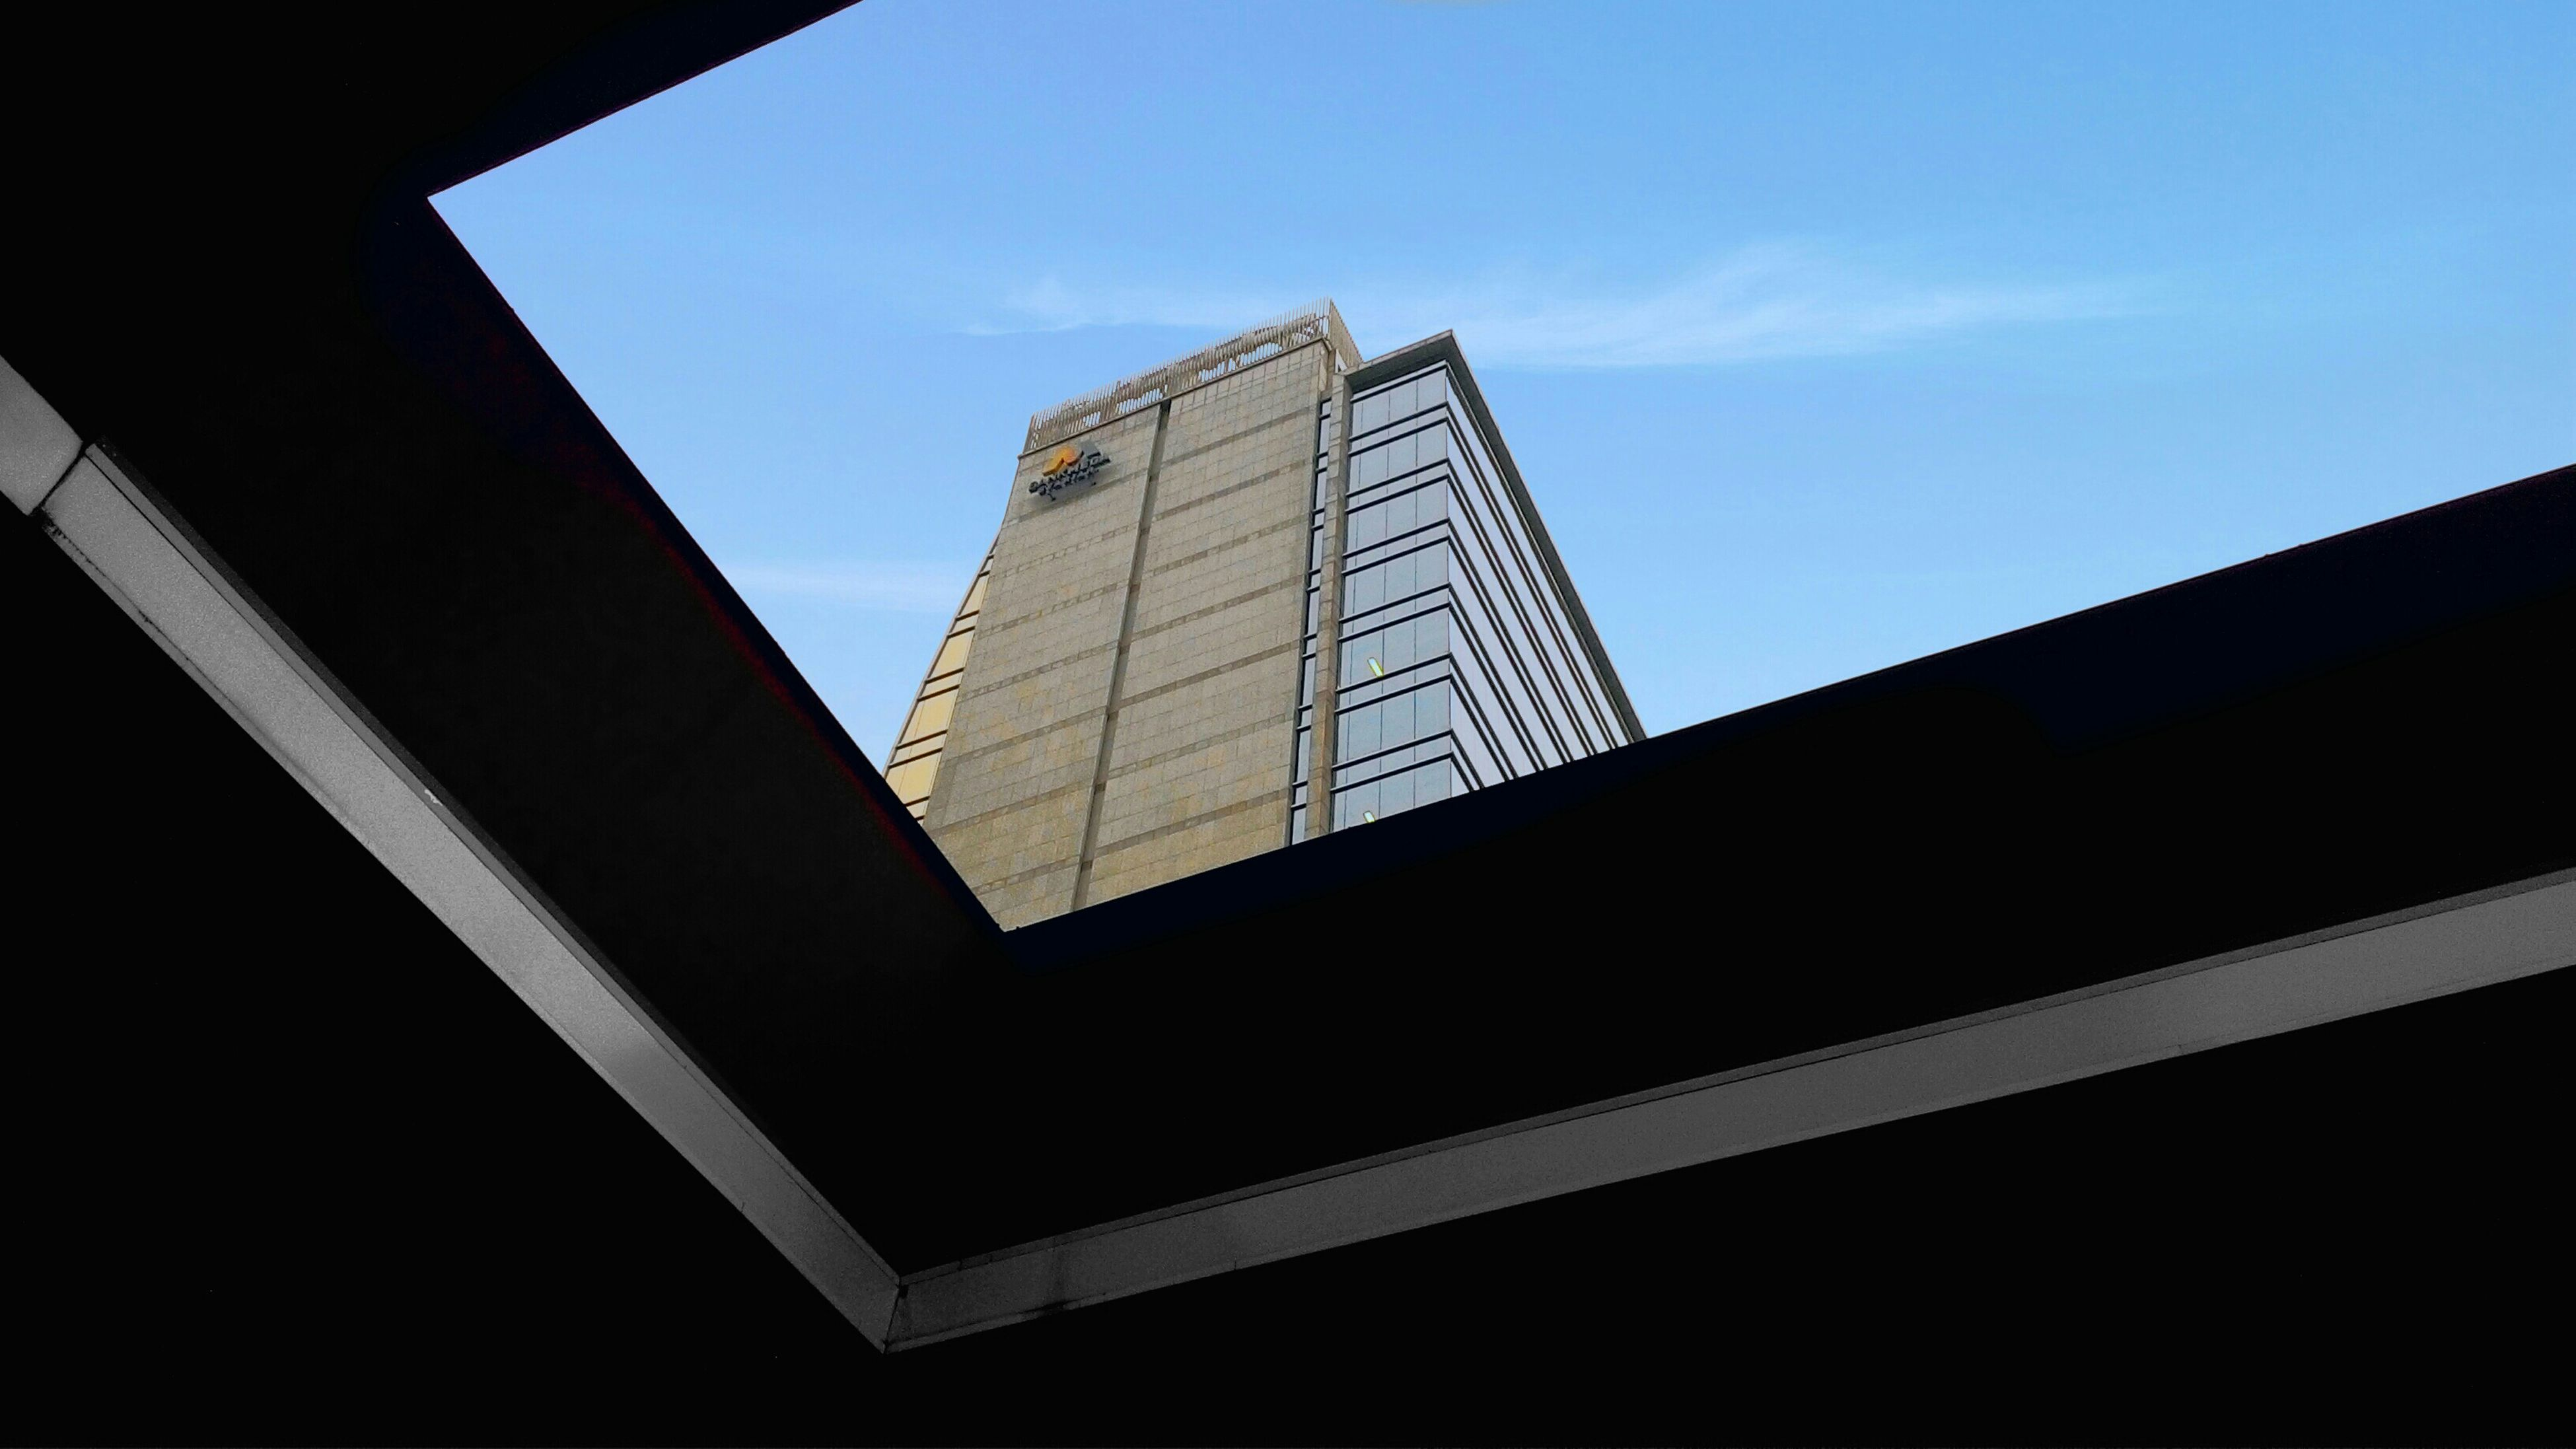 architecture, built structure, building exterior, low angle view, skyscraper, tall - high, modern, tower, office building, city, sky, tall, building, glass - material, reflection, no people, day, capital cities, travel destinations, clear sky